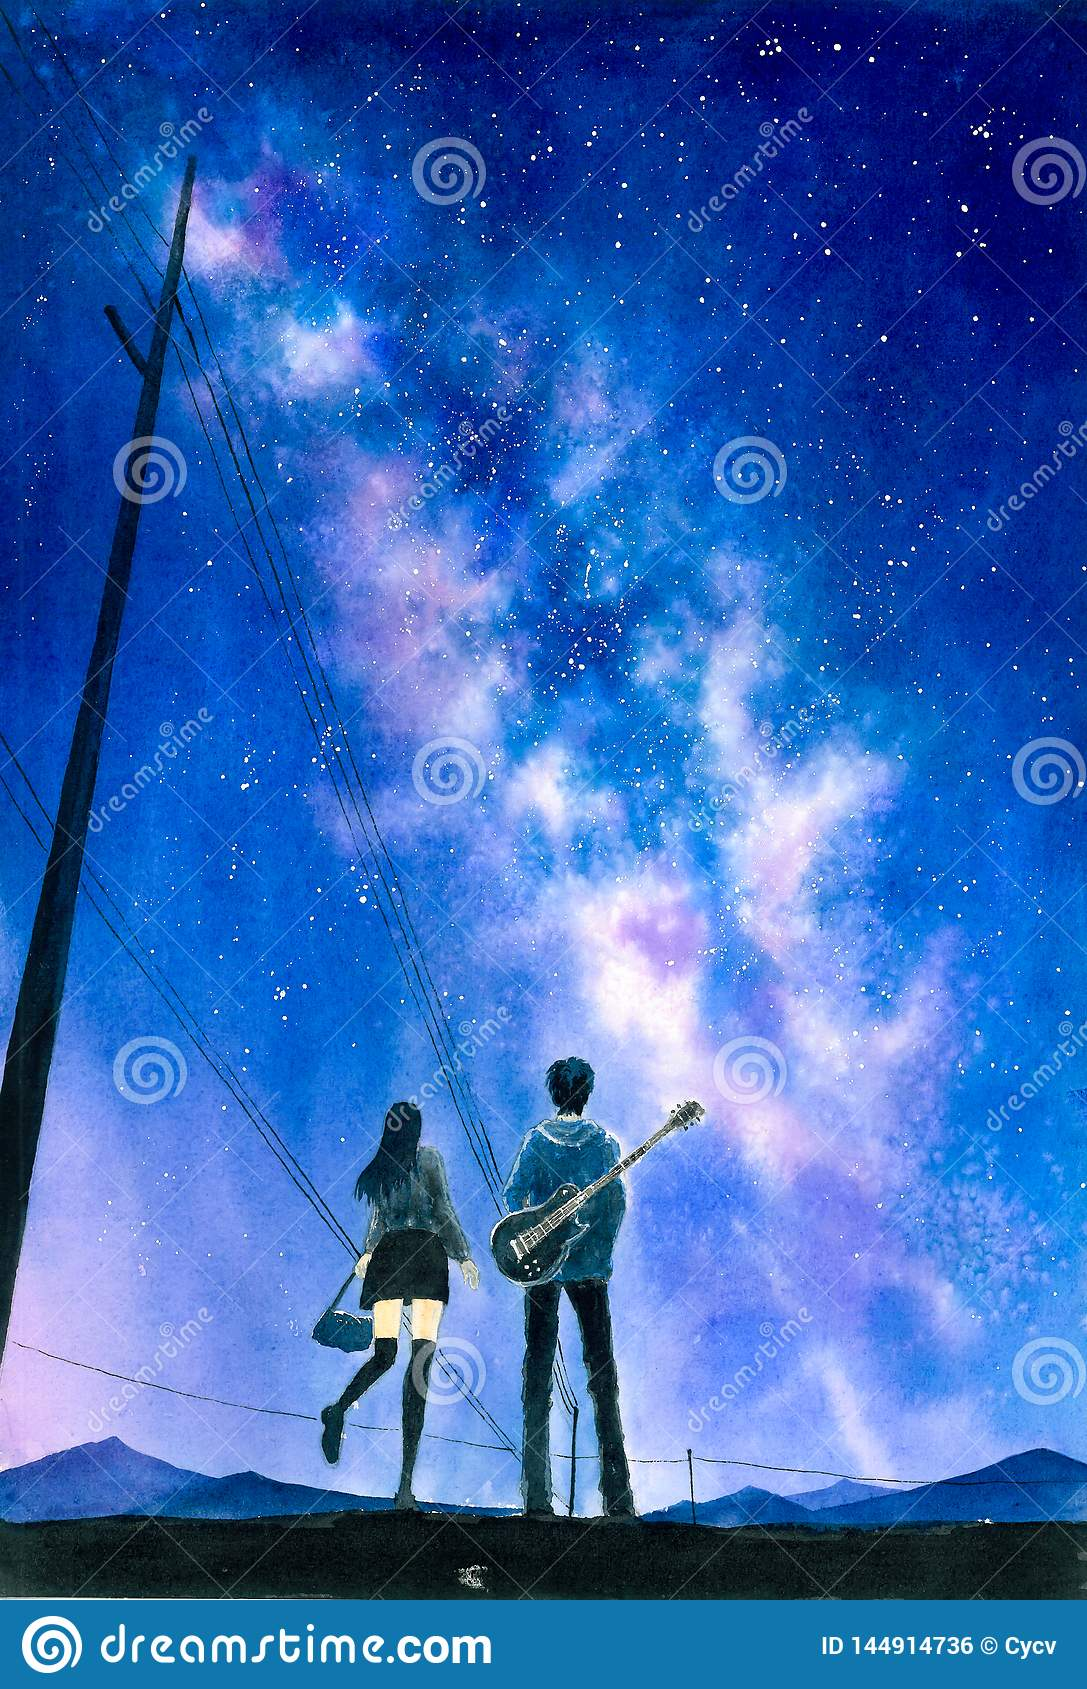 Watercolor Painting - Couple Under Starry Night Sky Stock